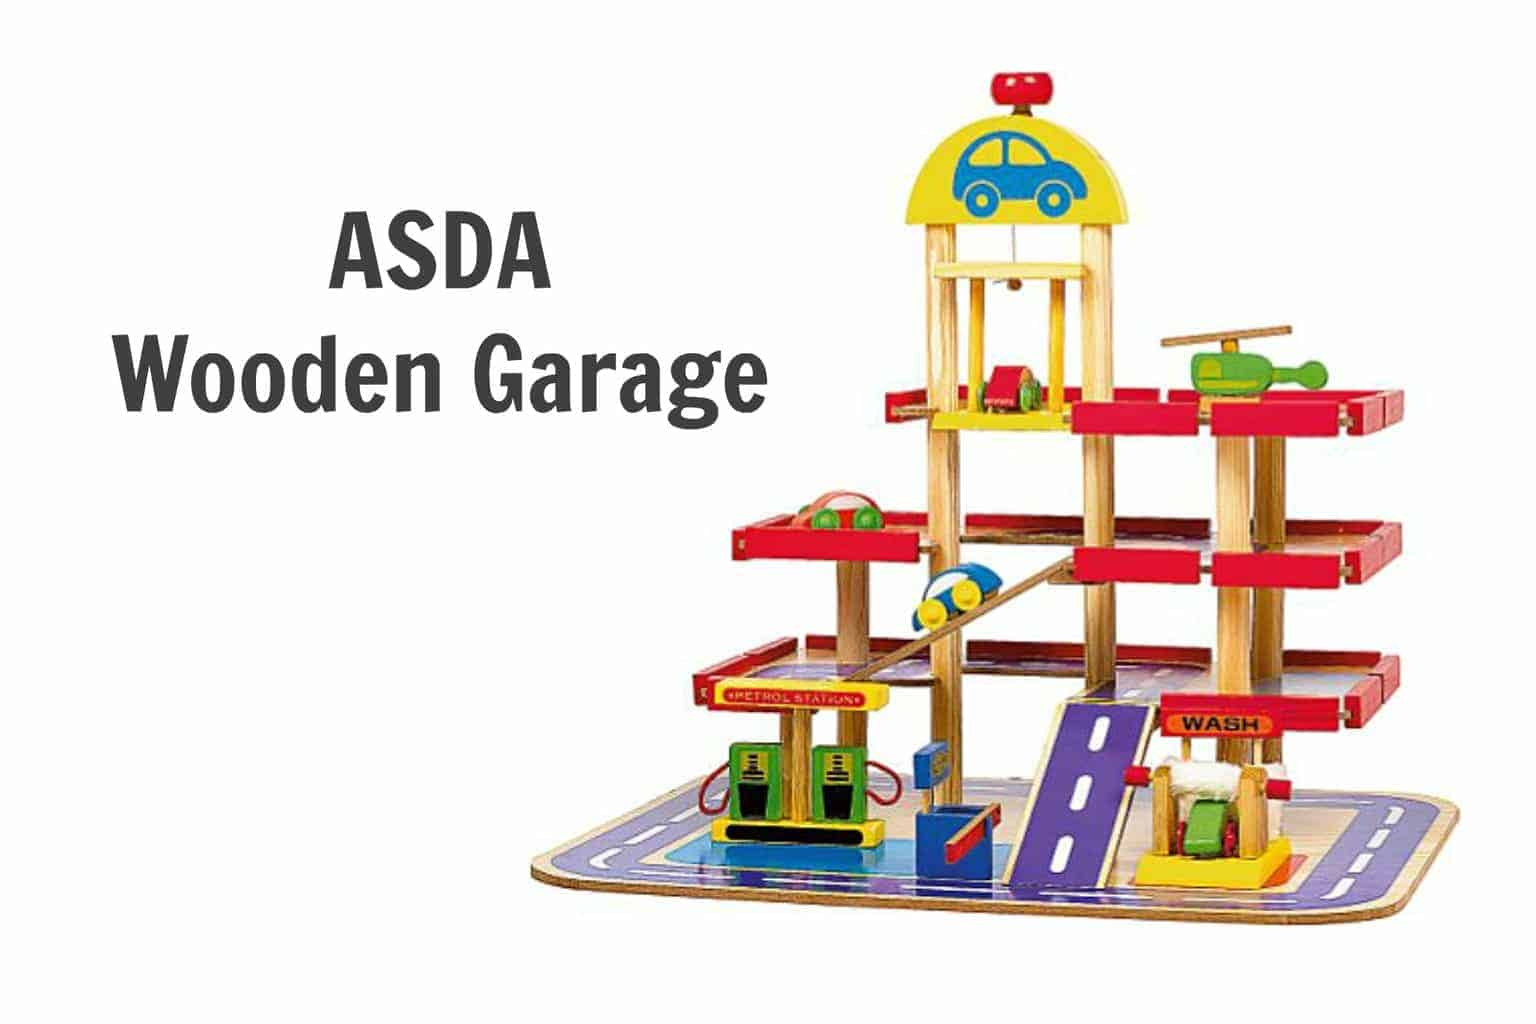 Wooden Garage - ASDA